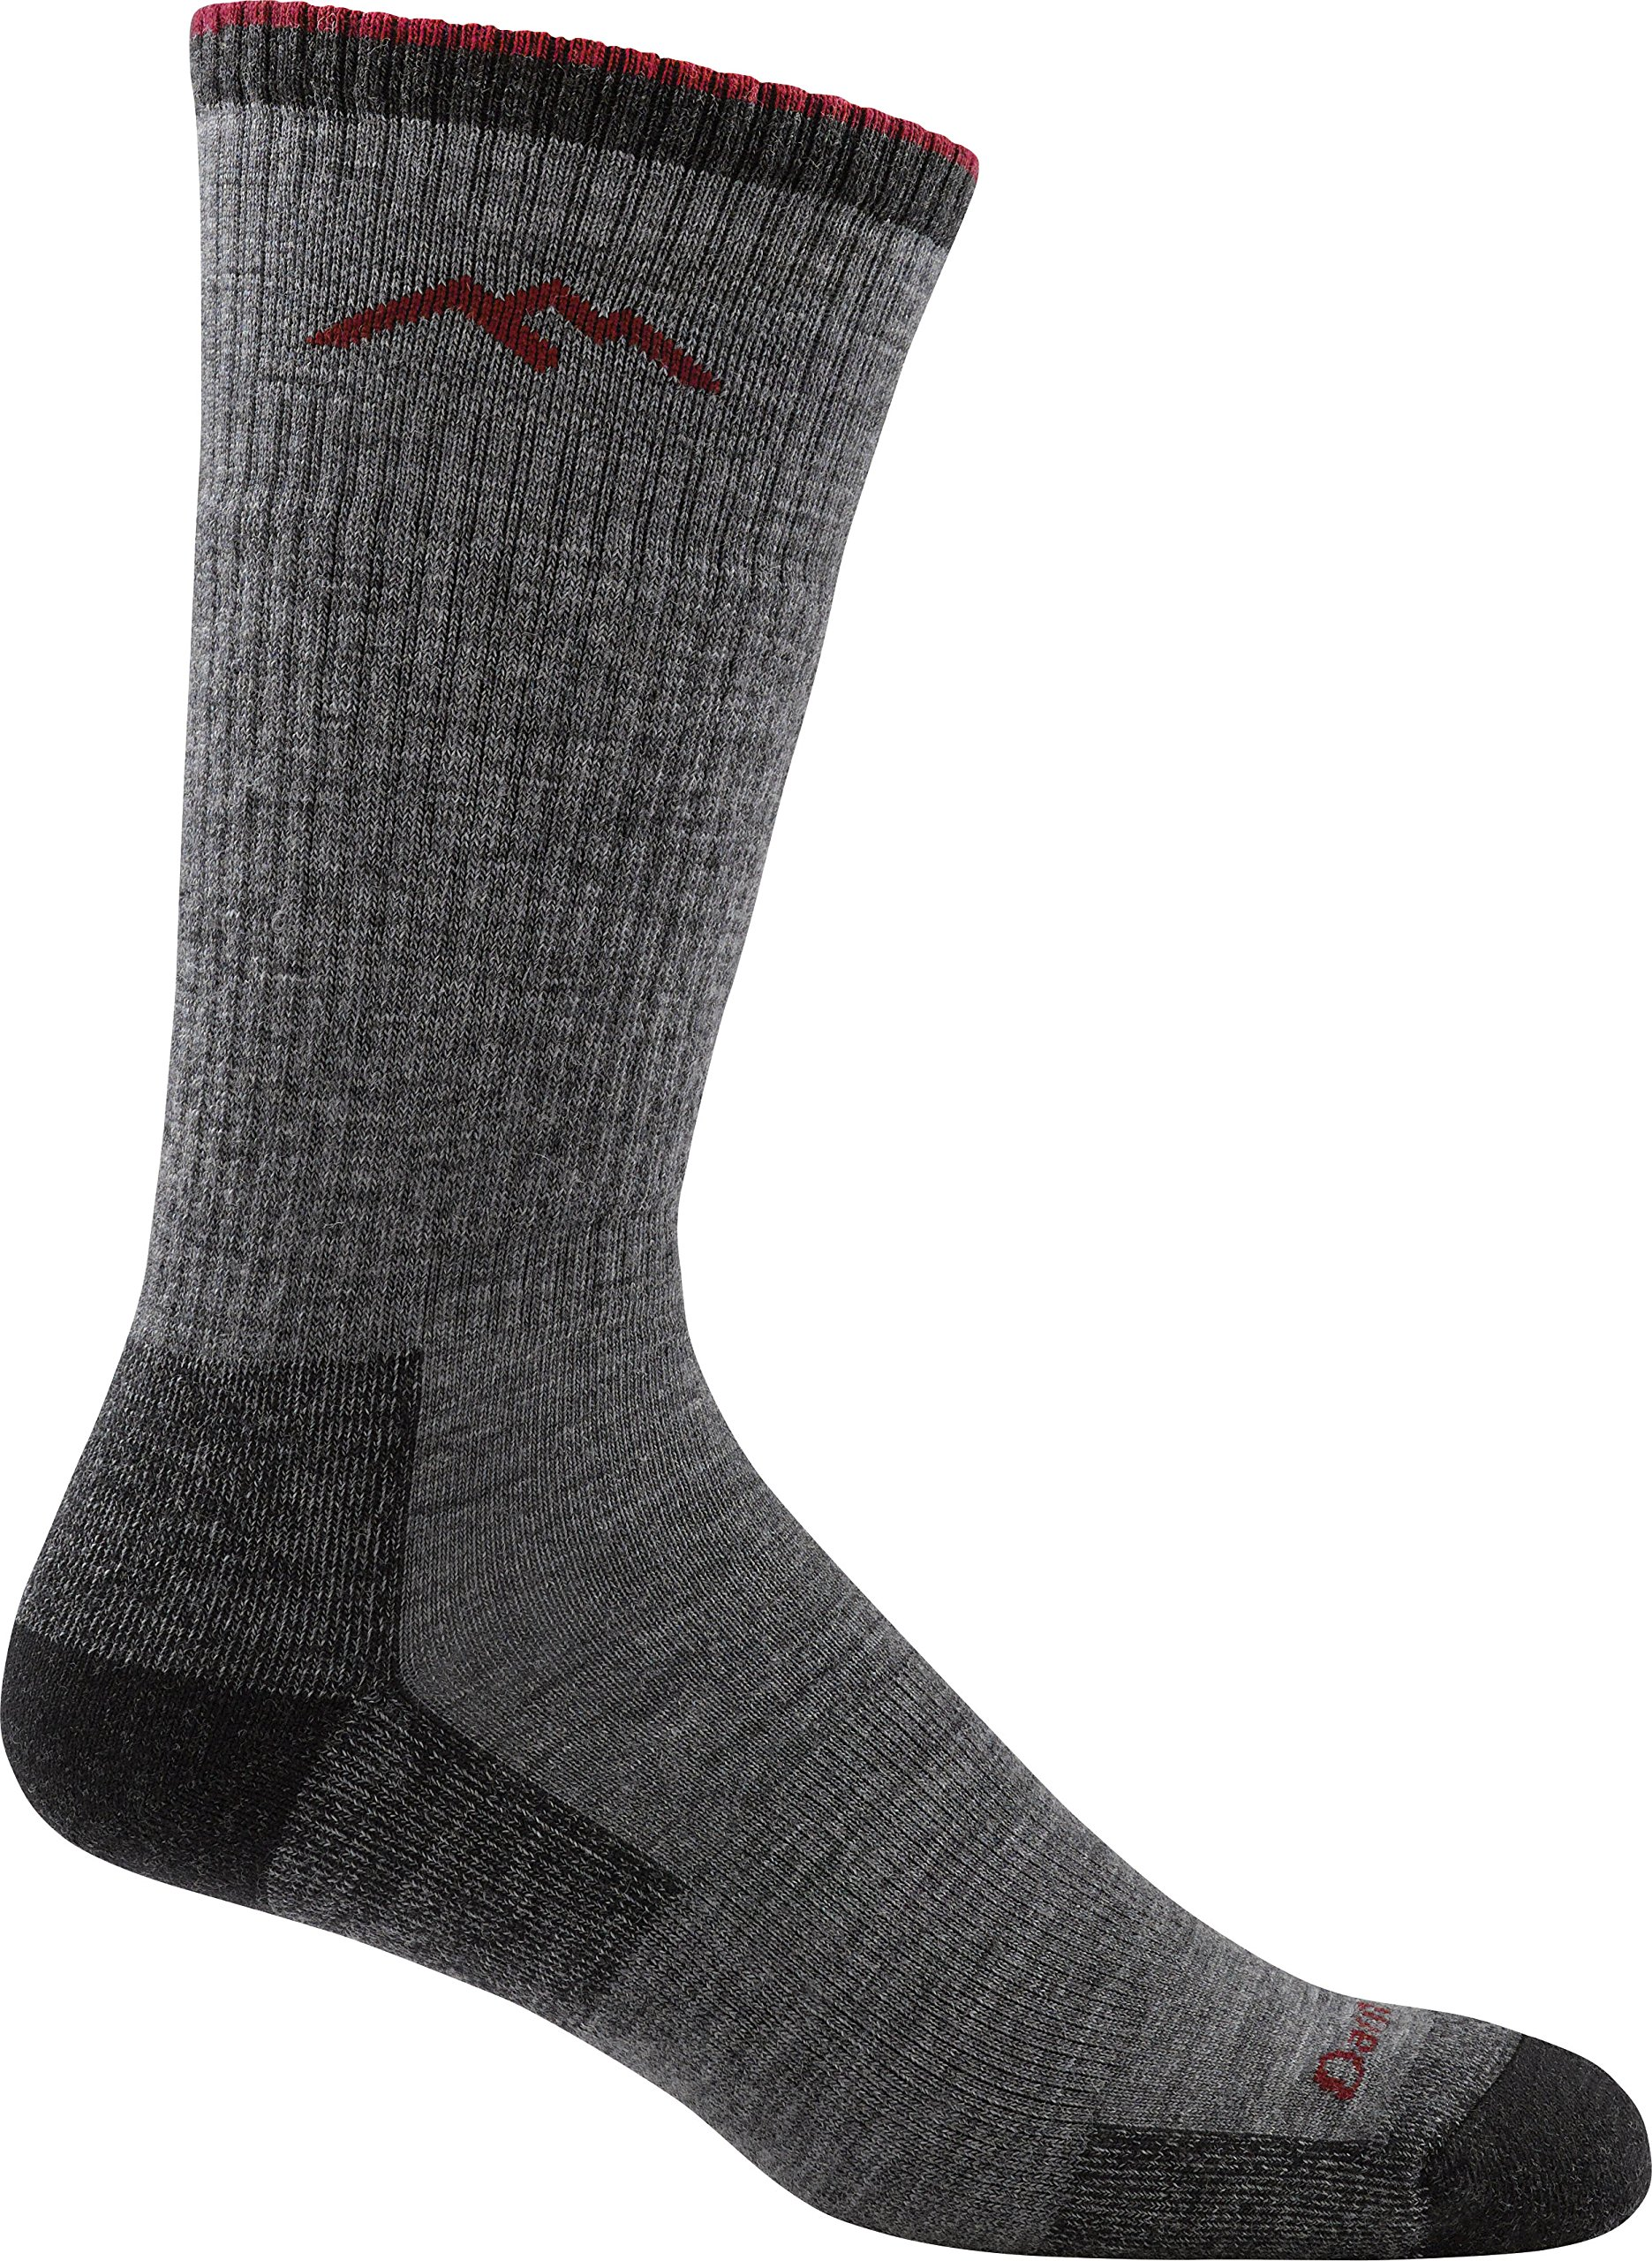 Darn Tough Men's Wool Boot Cushion Sock (Style 1403) - 6 Pack Special Offer (Charcoal, Medium) by Darn Tough